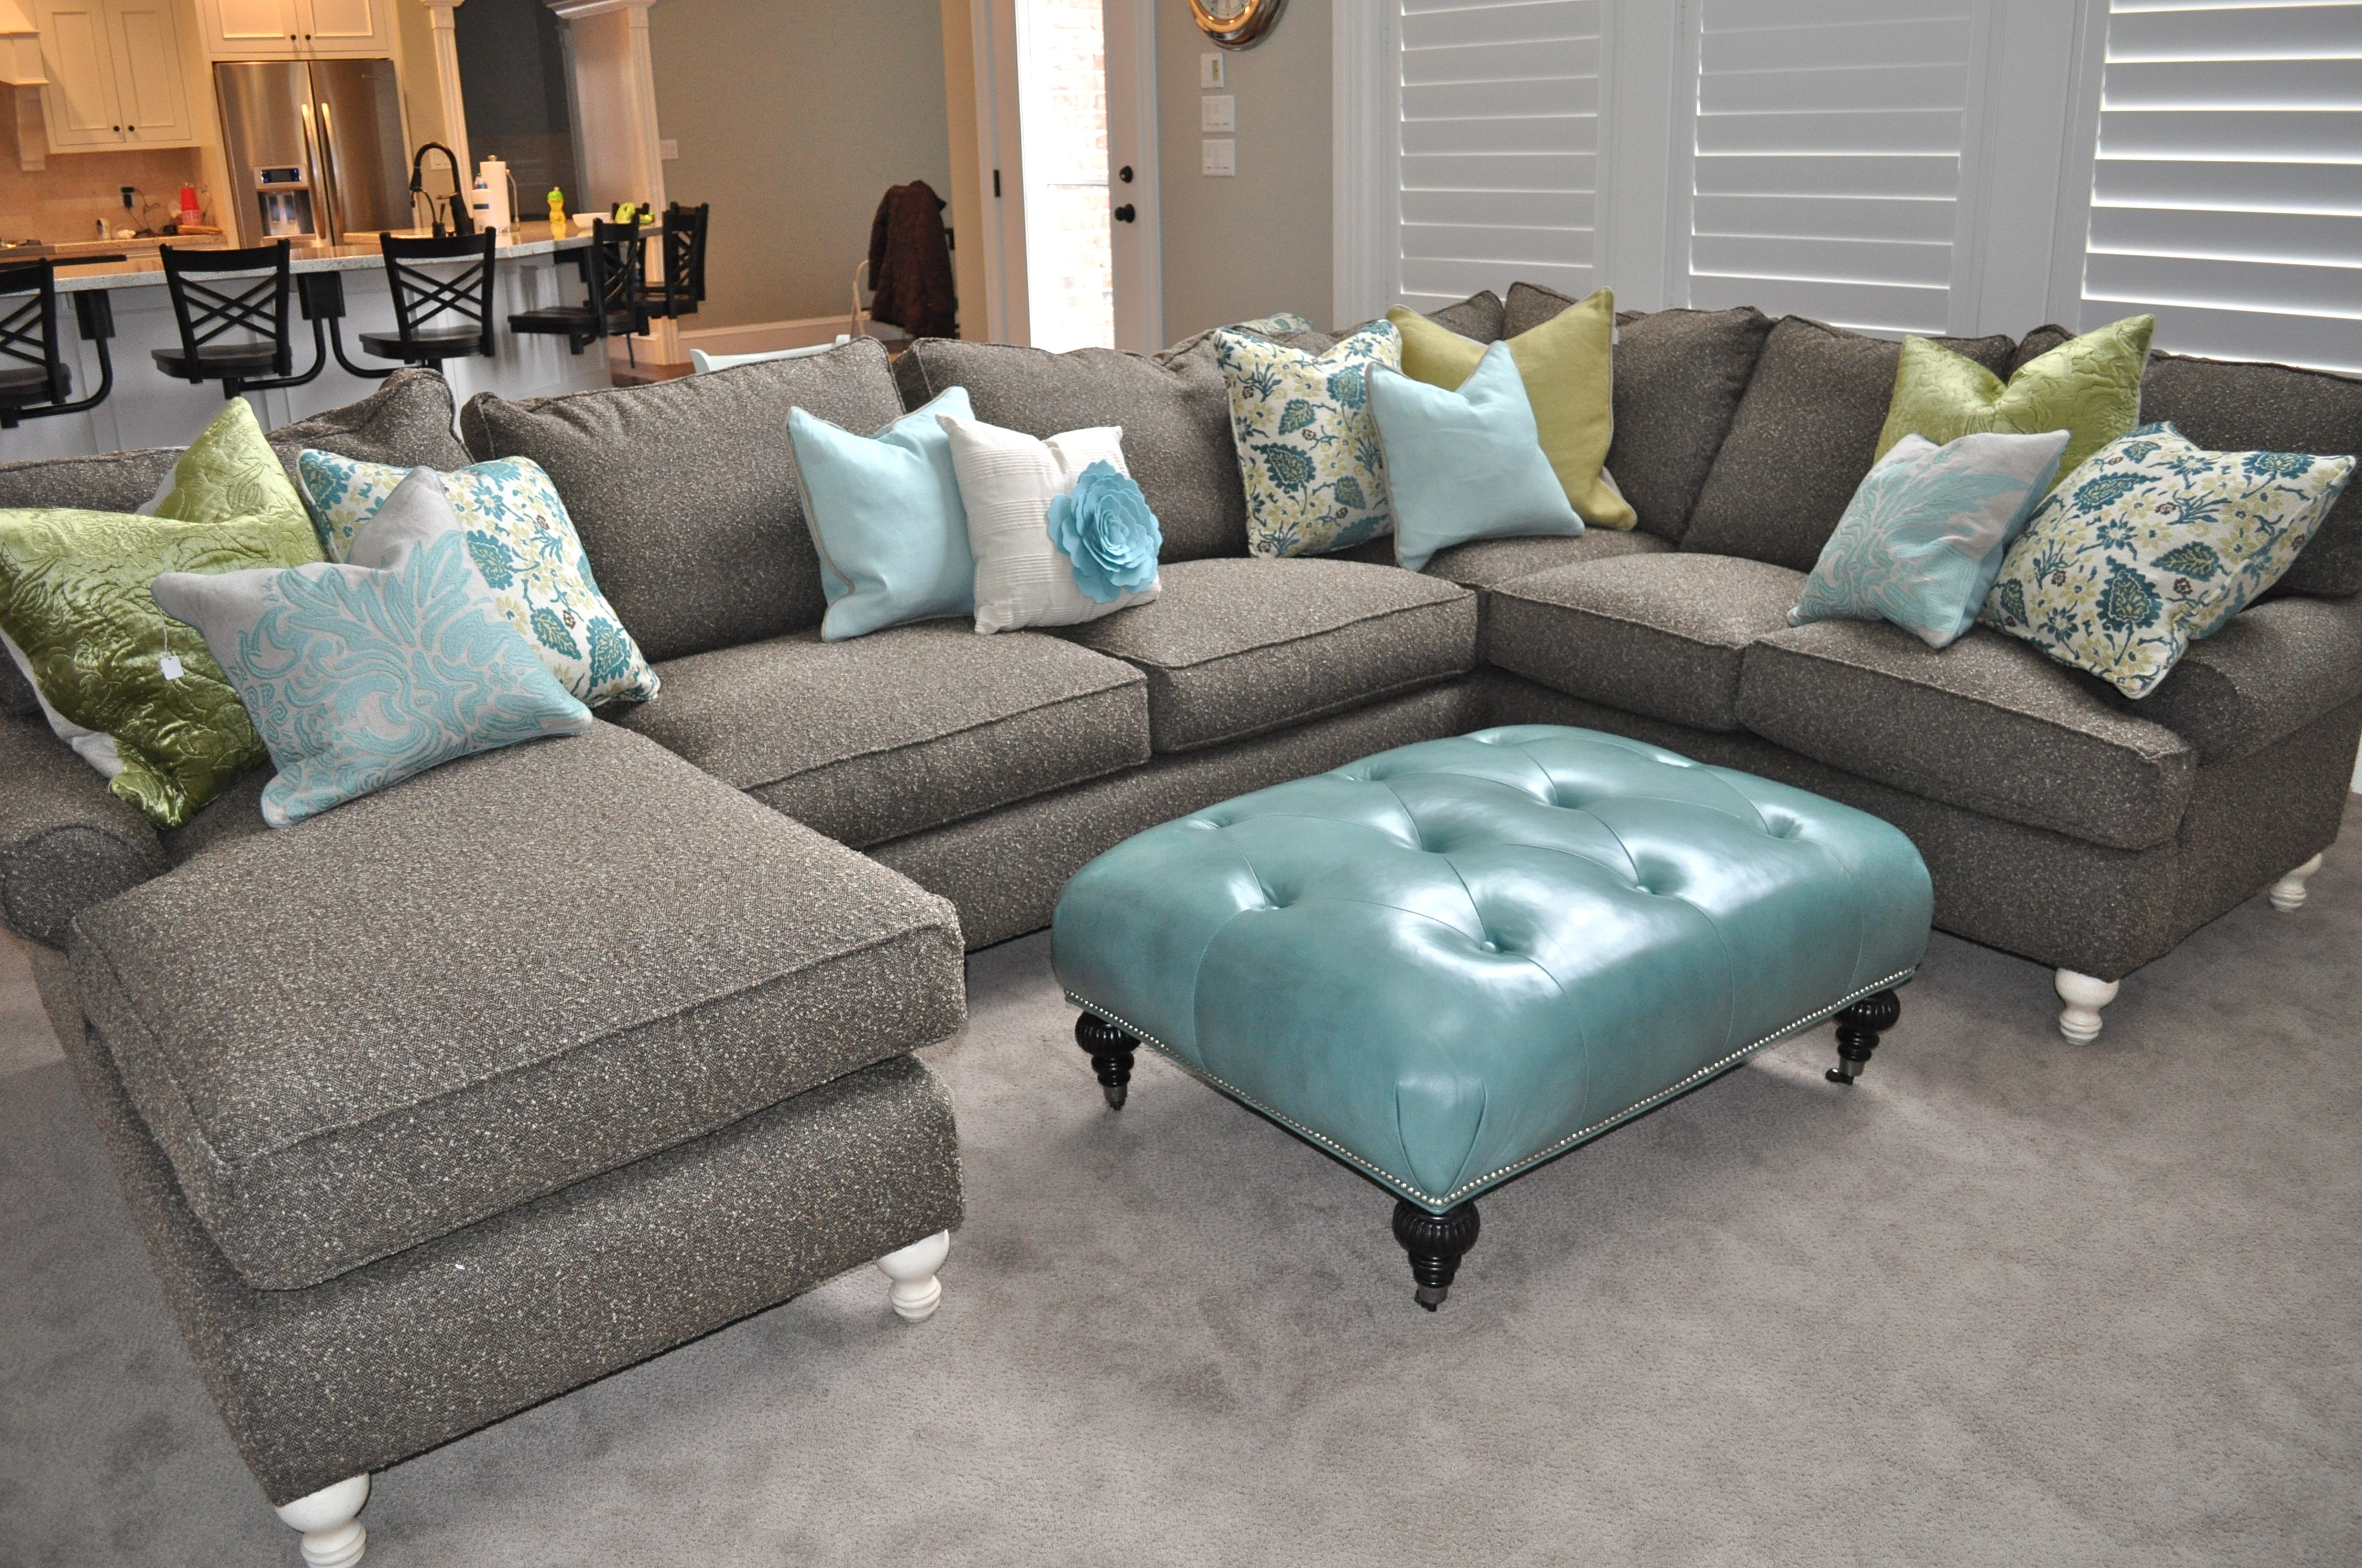 Fancy Green Sectional Sofa With Chaise 52 With Additional Faux With Green Sectional Sofas With Chaise (View 3 of 10)